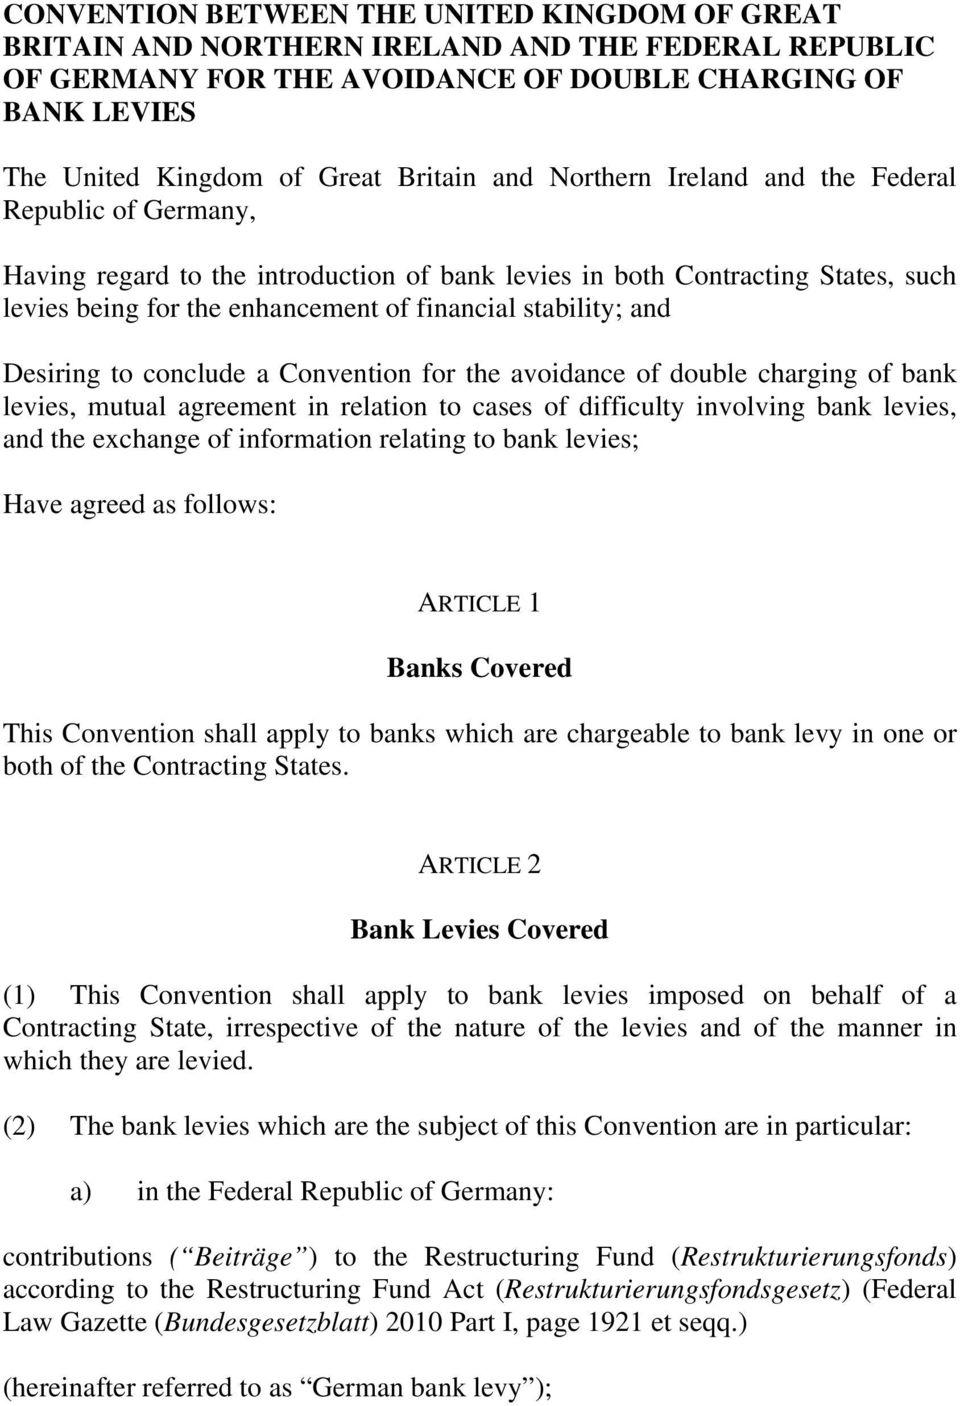 and Desiring to conclude a Convention for the avoidance of double charging of bank levies, mutual agreement in relation to cases of difficulty involving bank levies, and the exchange of information